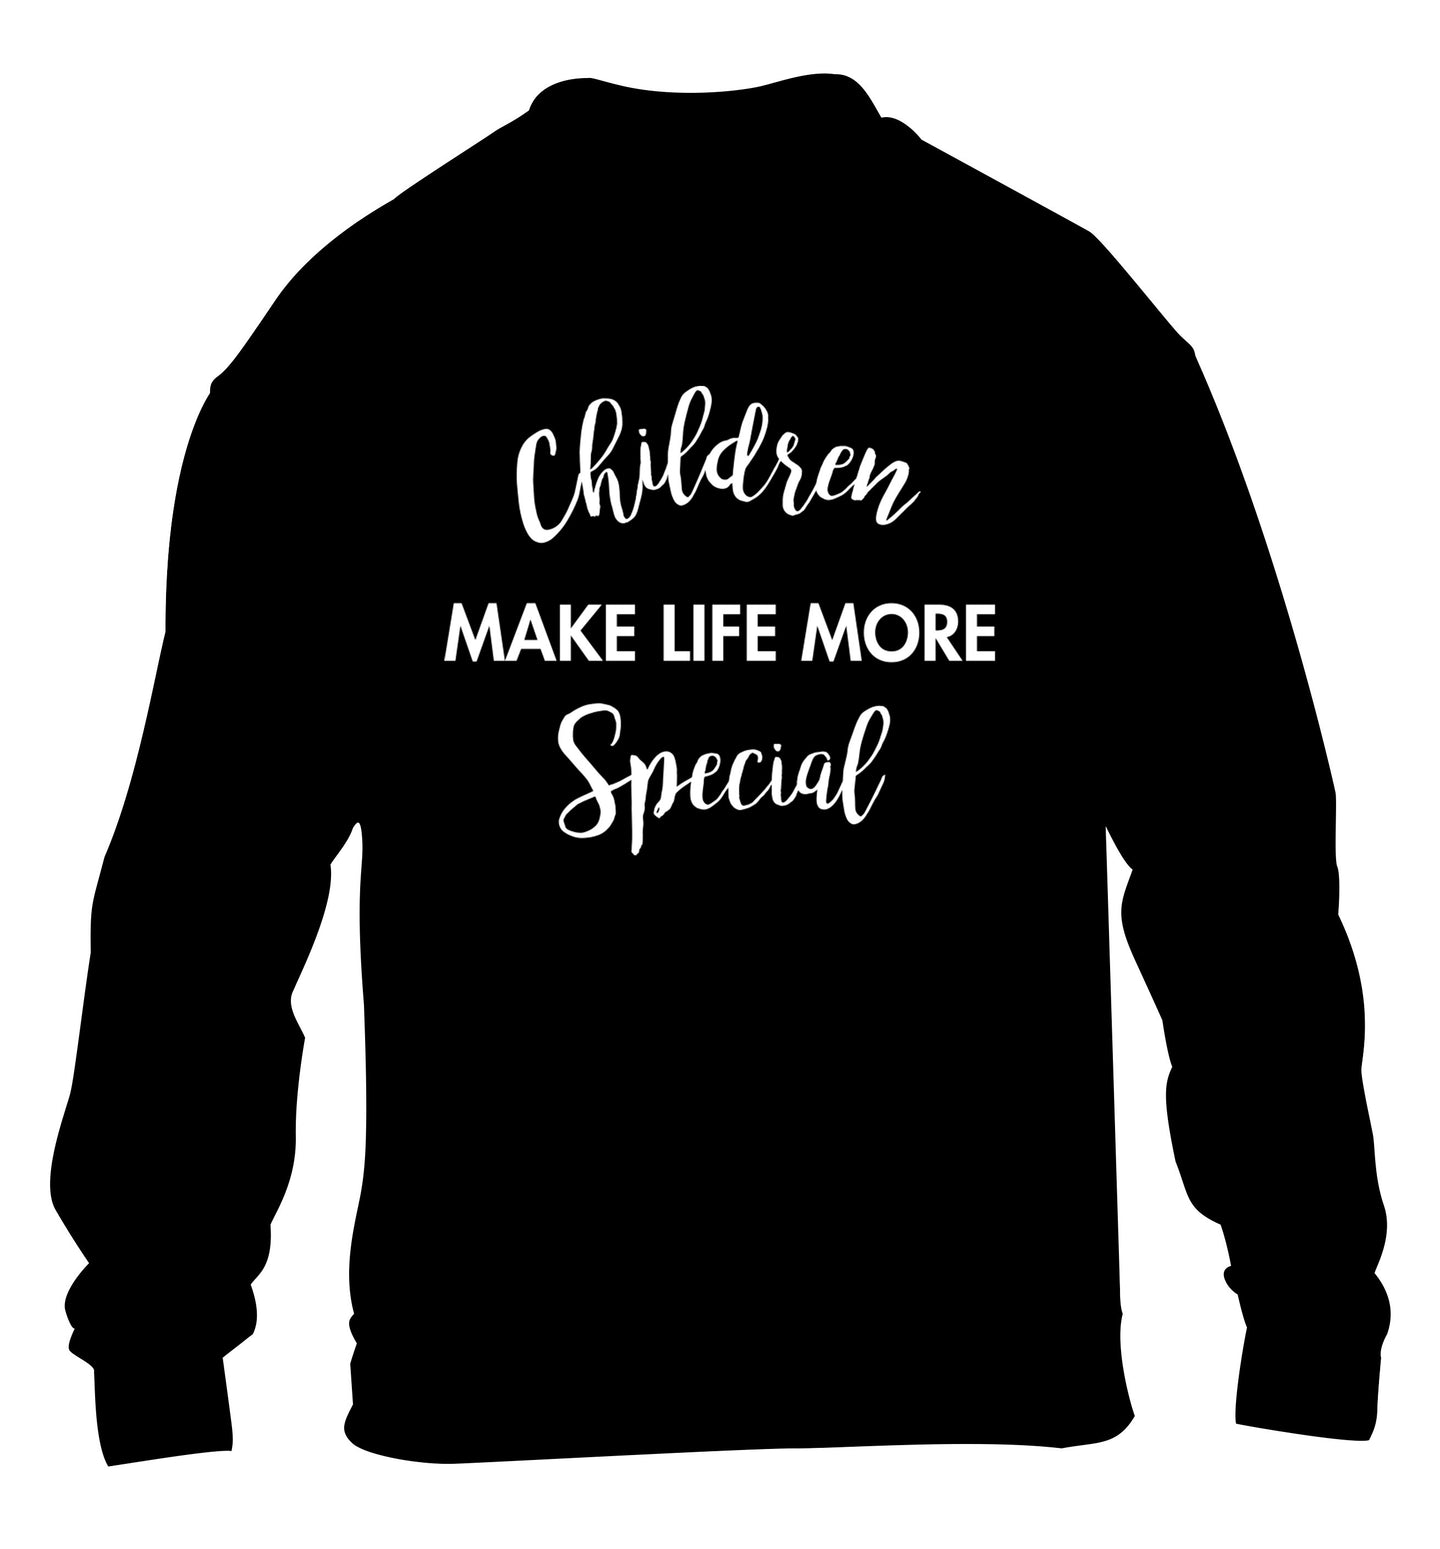 Children make life more special children's black sweater 12-14 Years